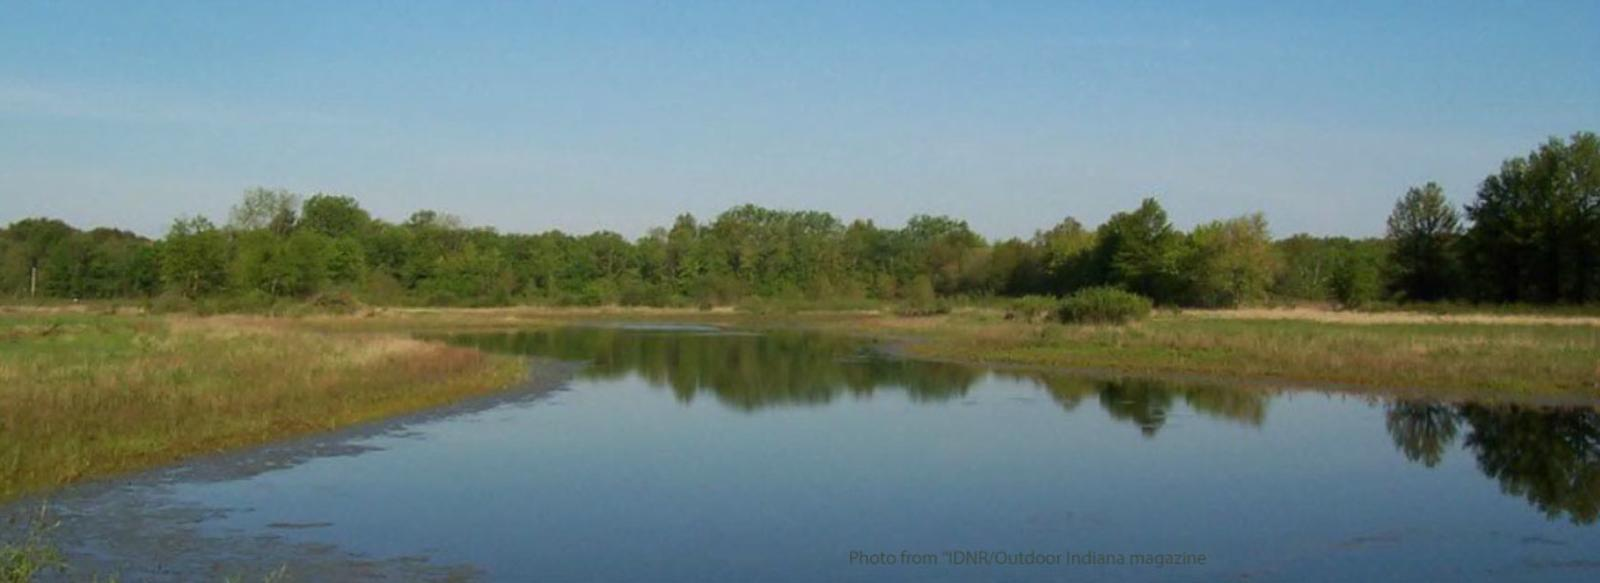 LaSalle-Fish-and-Wildlife-Area-Indiana-DNR